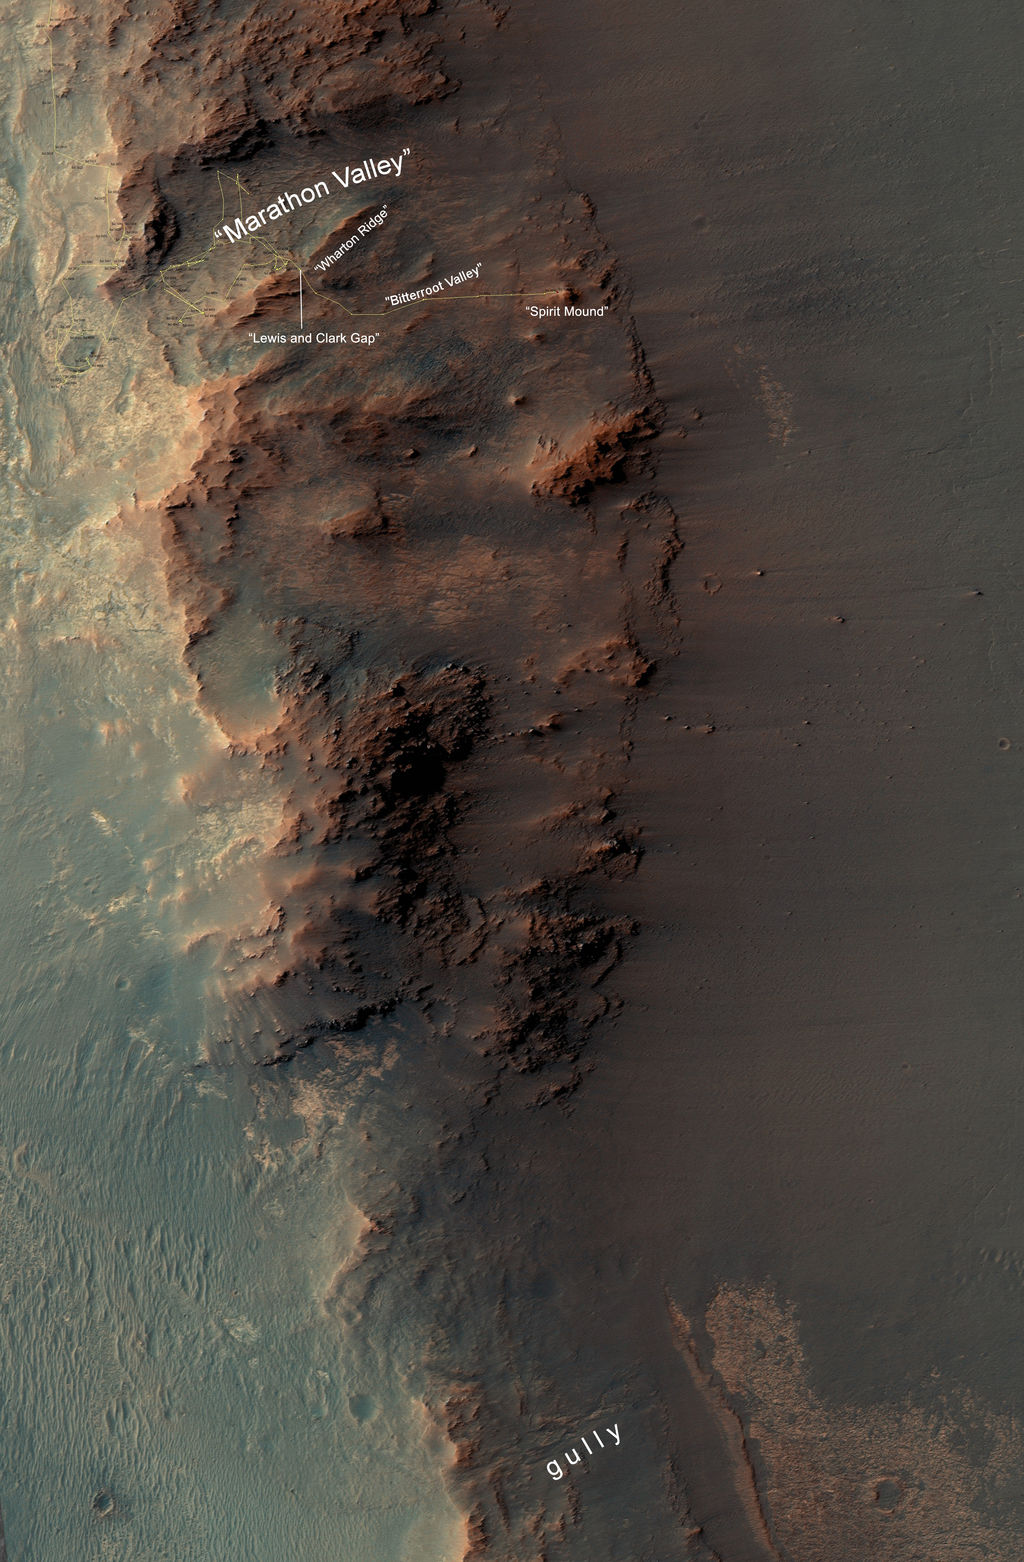 This map show a portion of Endeavour Crater's western rim that includes 